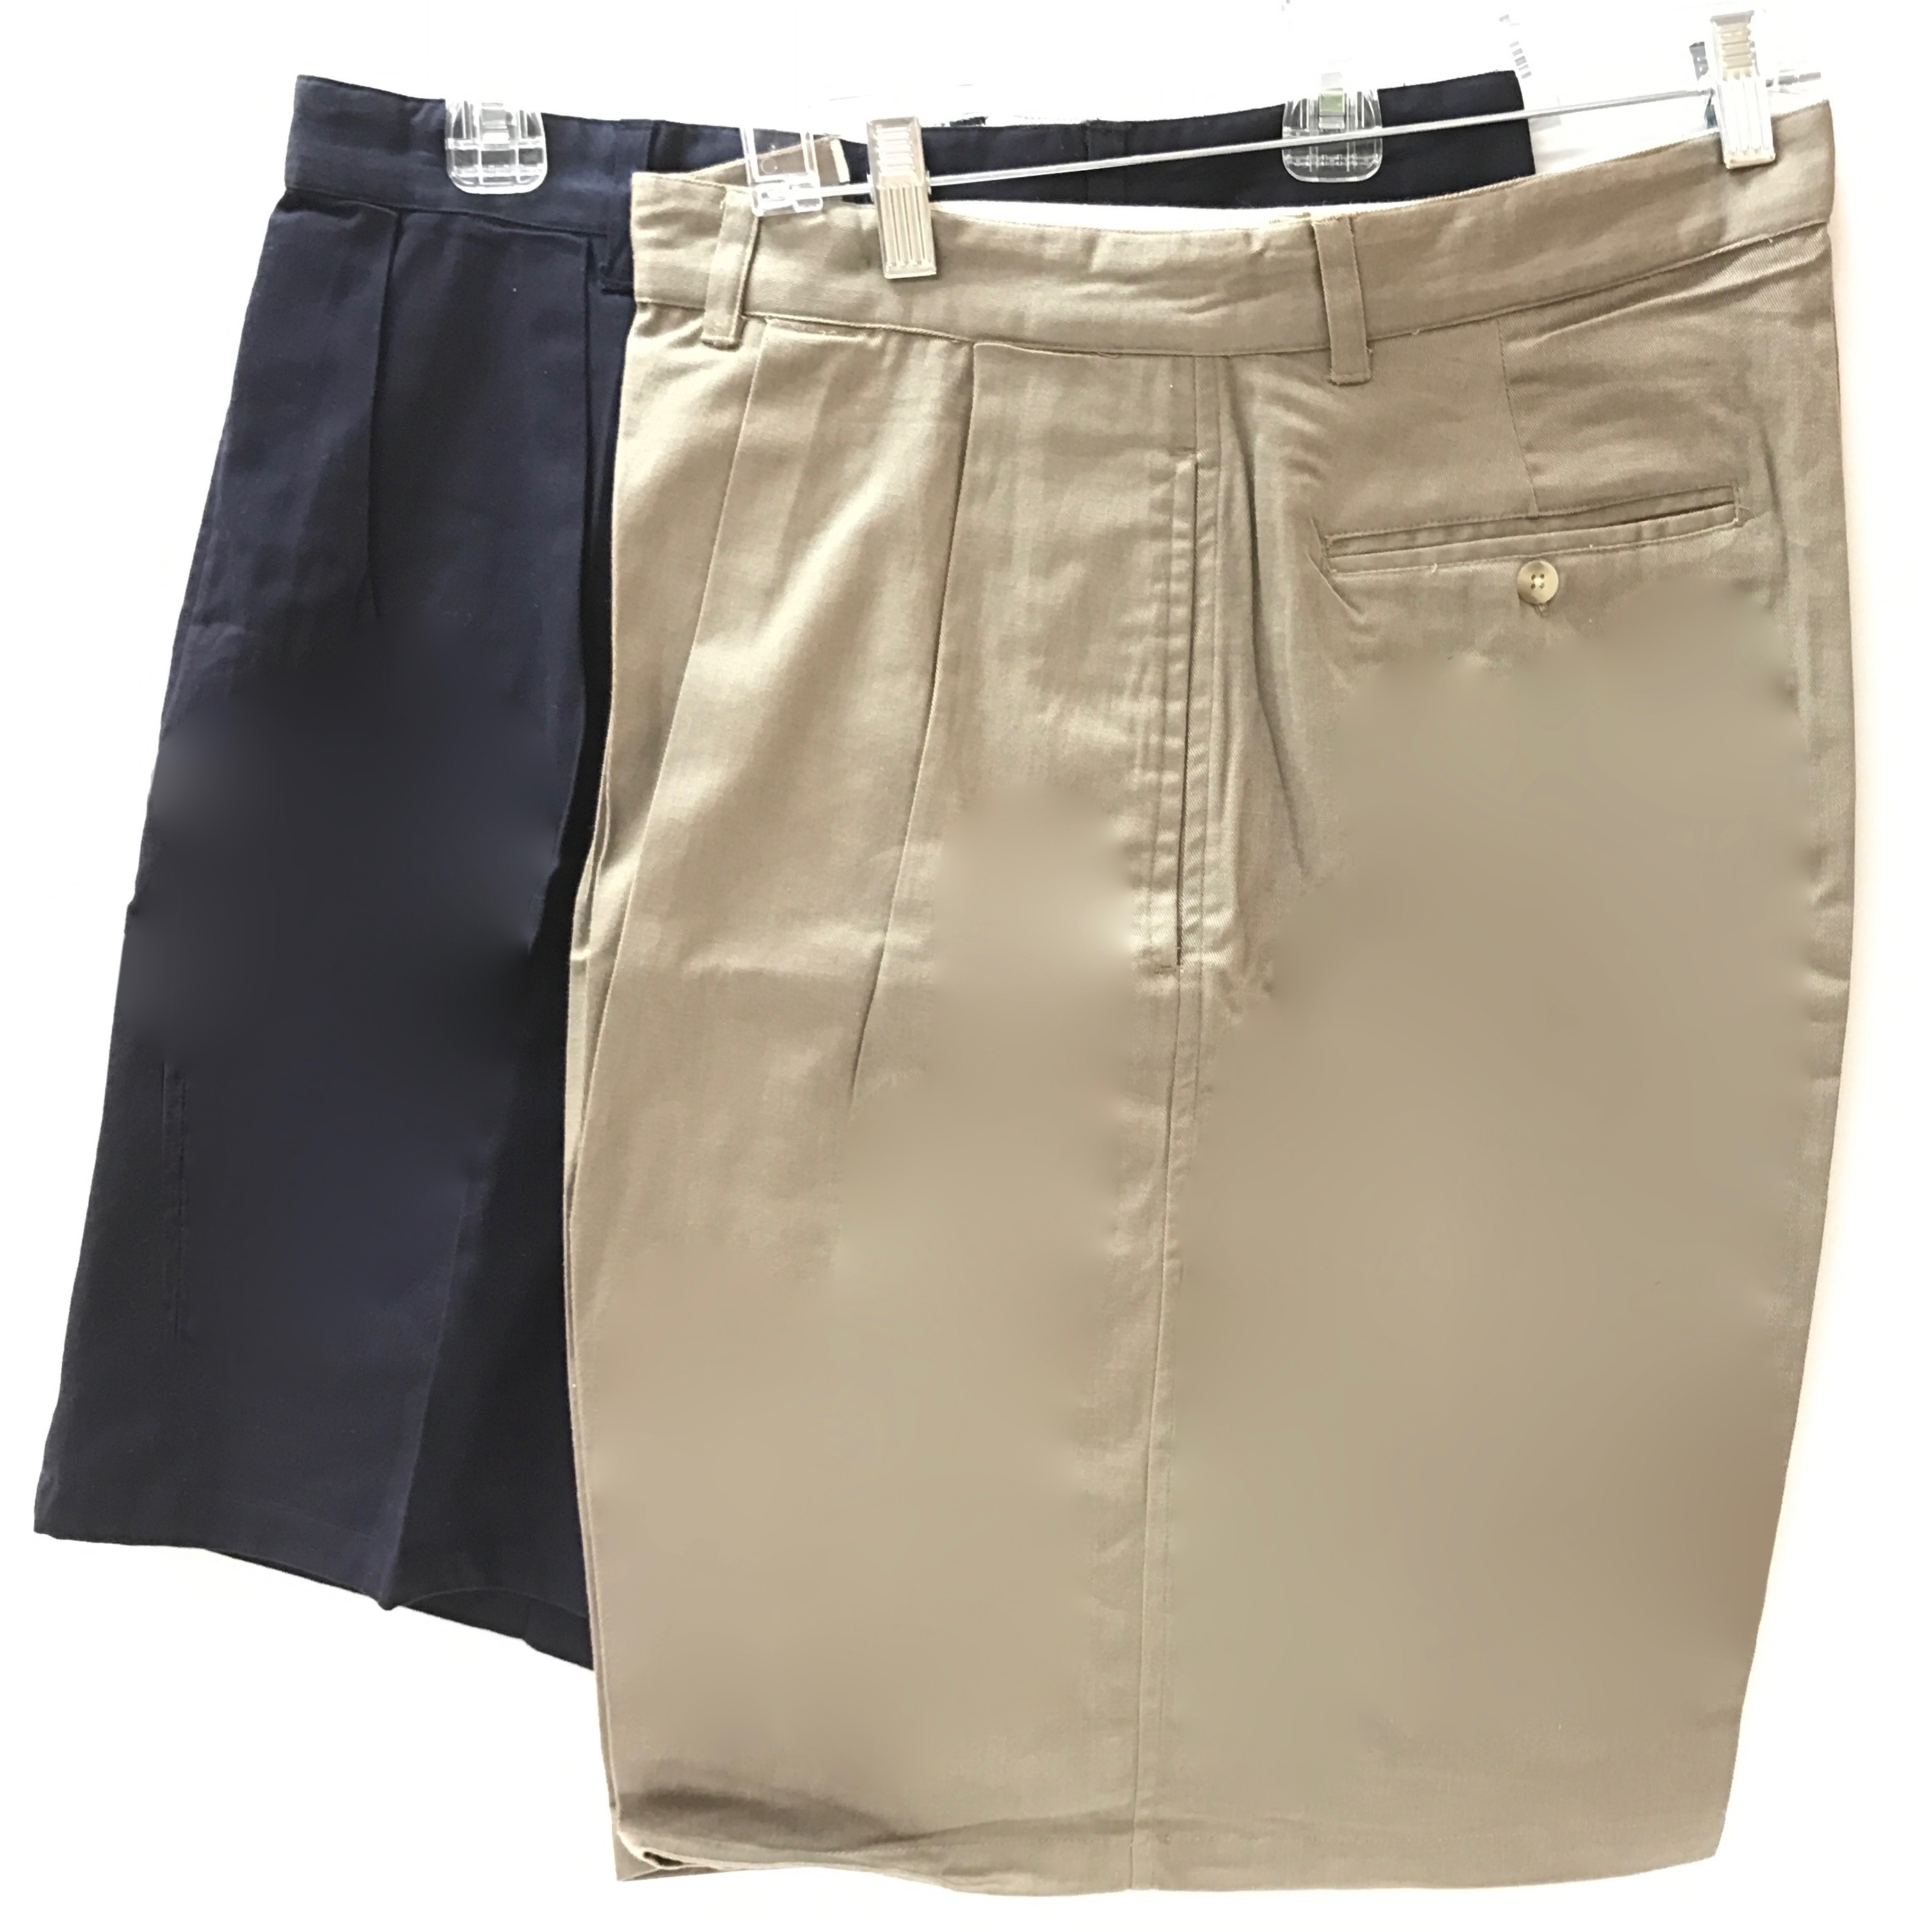 Mens Golf Shorts Asst Size/Color